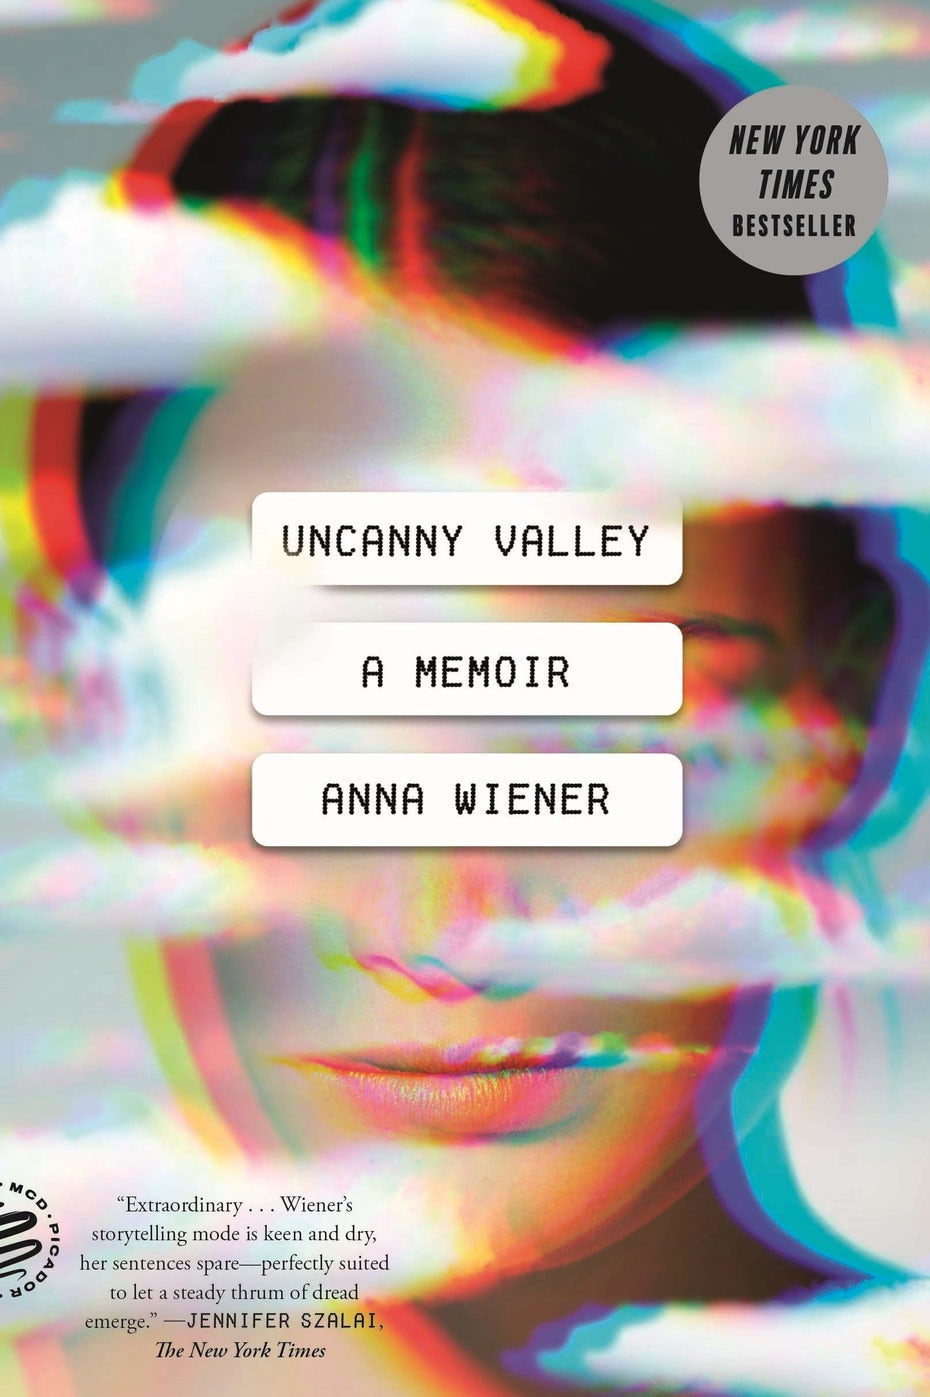 book cover showing a woman's face in the clouds, partially obscured by text